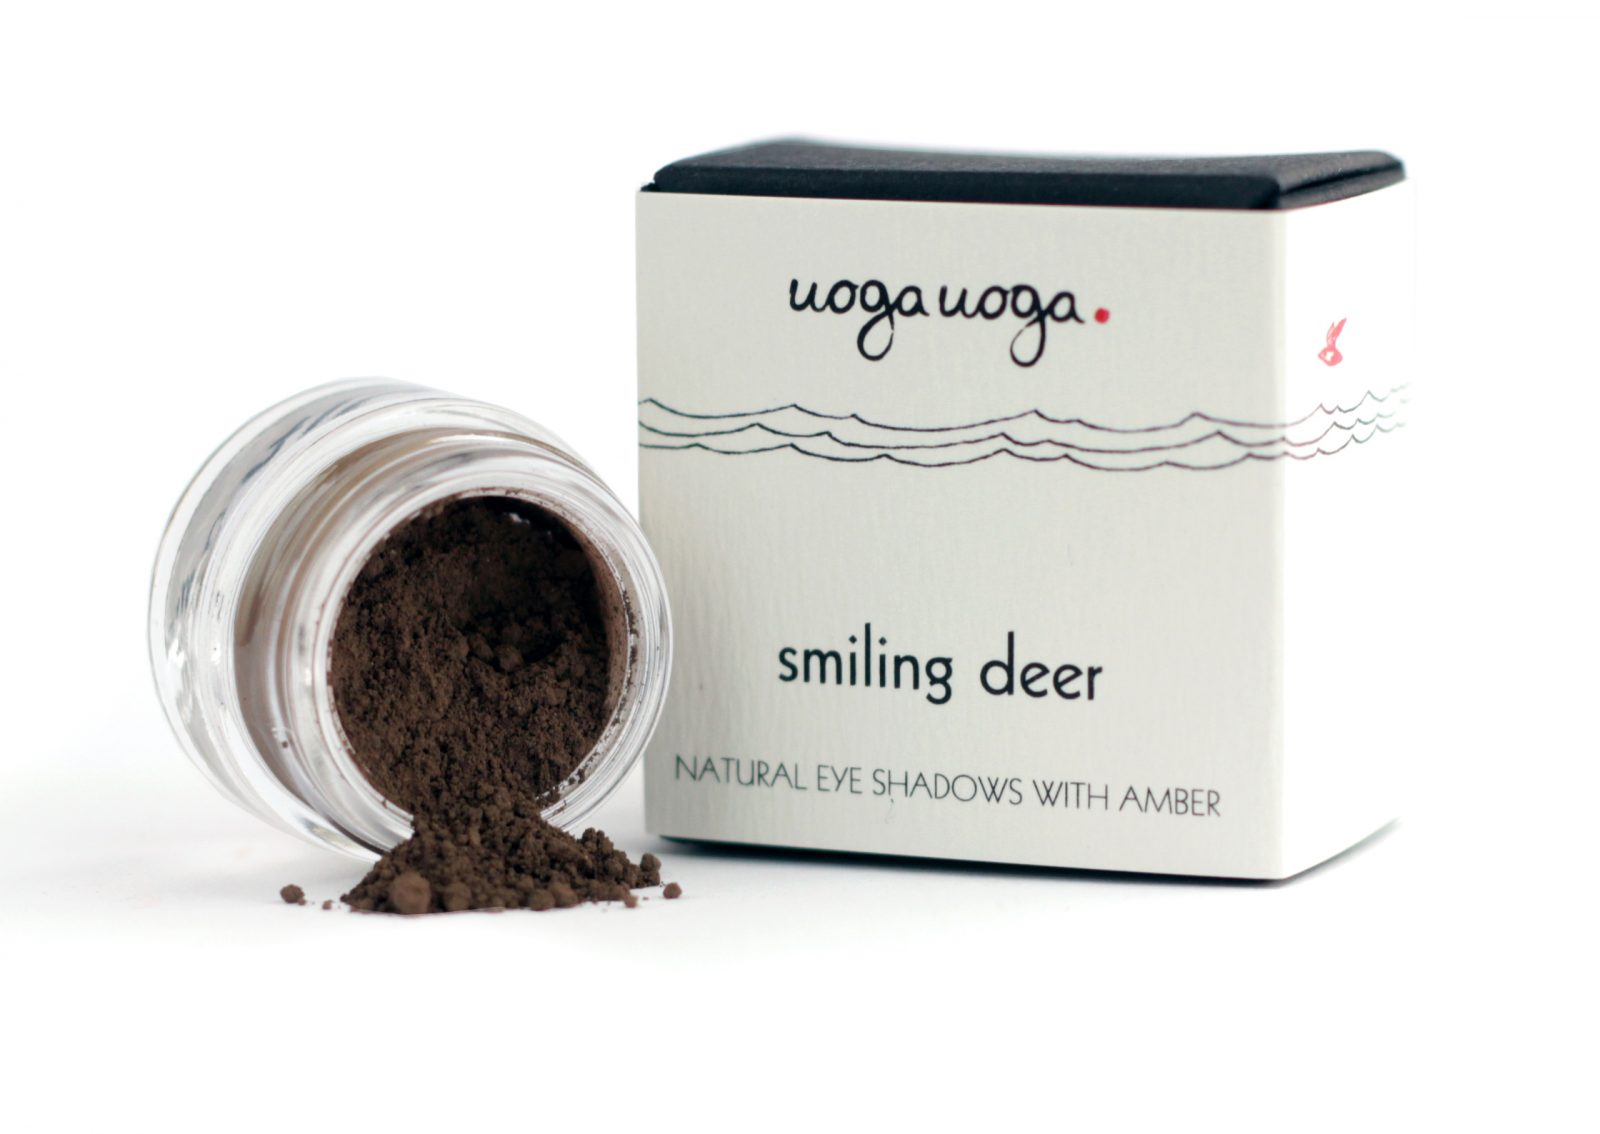 Uoga Uoga eyeshadow smiling deer